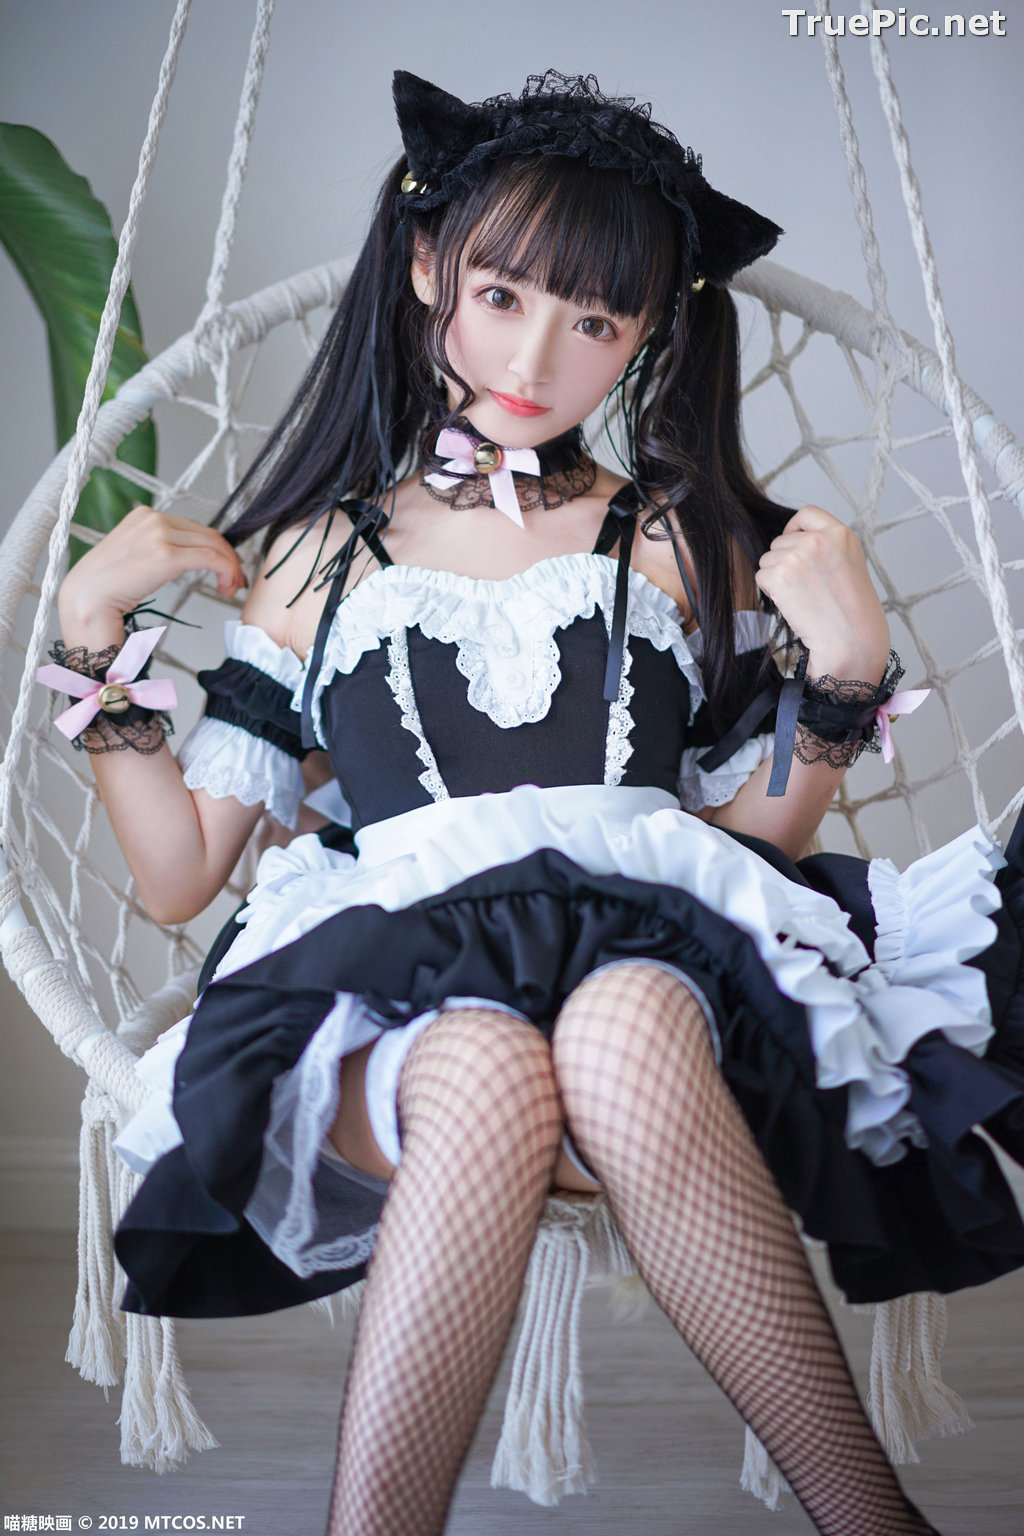 Image [MTCos] 喵糖映画 Vol.051 - Chinese Cute Model - Lovely Maid Cat - TruePic.net - Picture-5